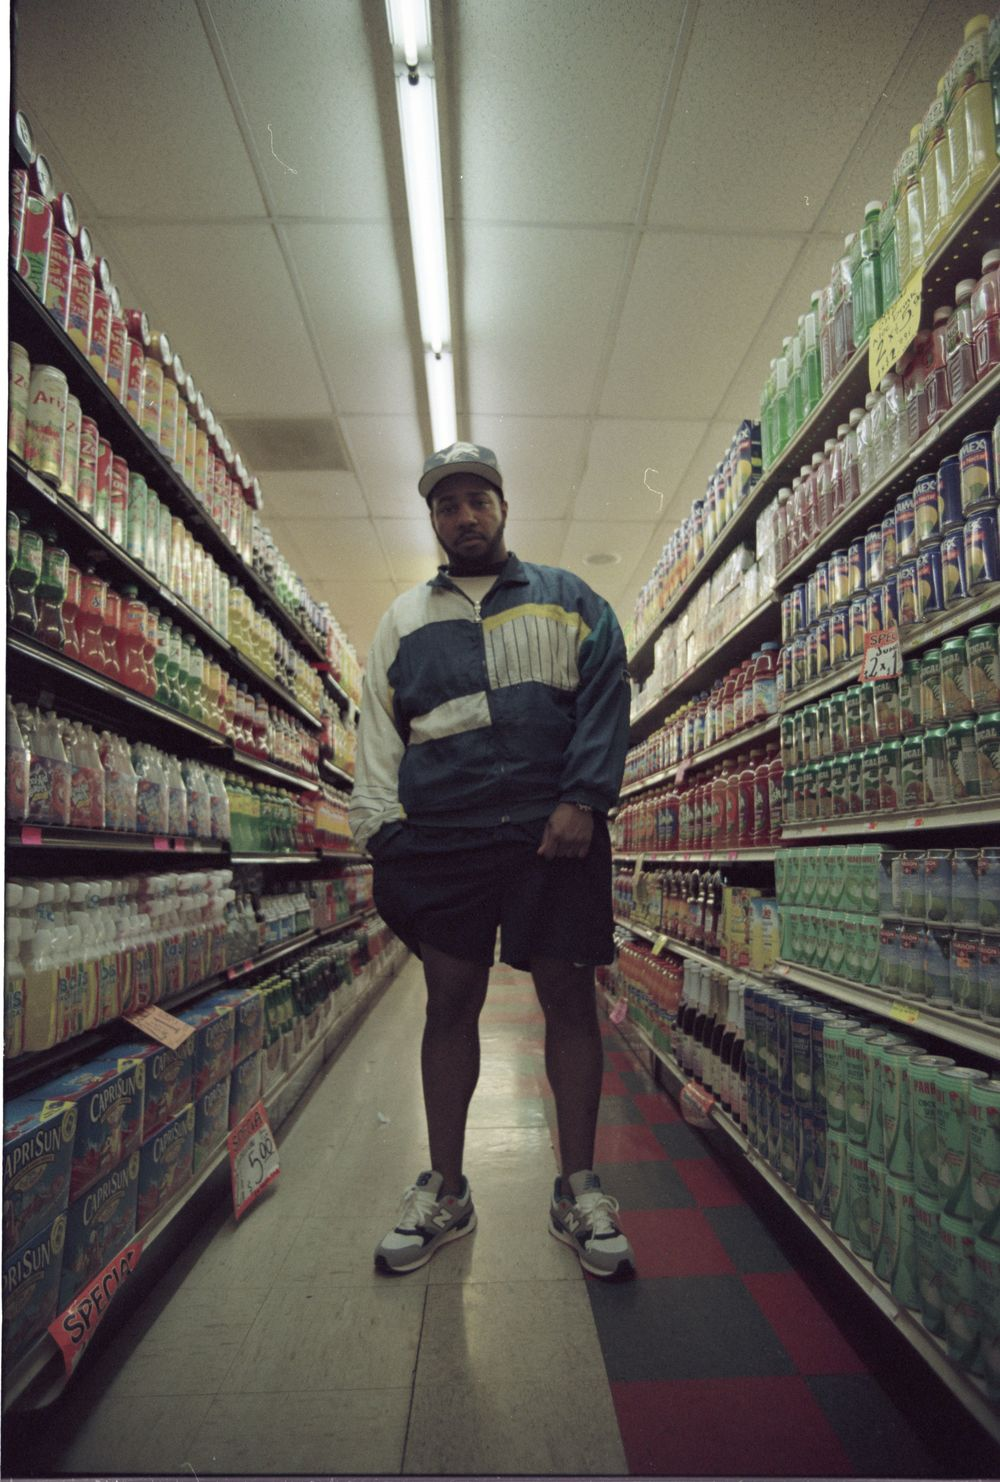 Chuck Inglish - Grocery Store Photo - 2 [3408 x 5052] - Credit to Julian Burgueno.JPG